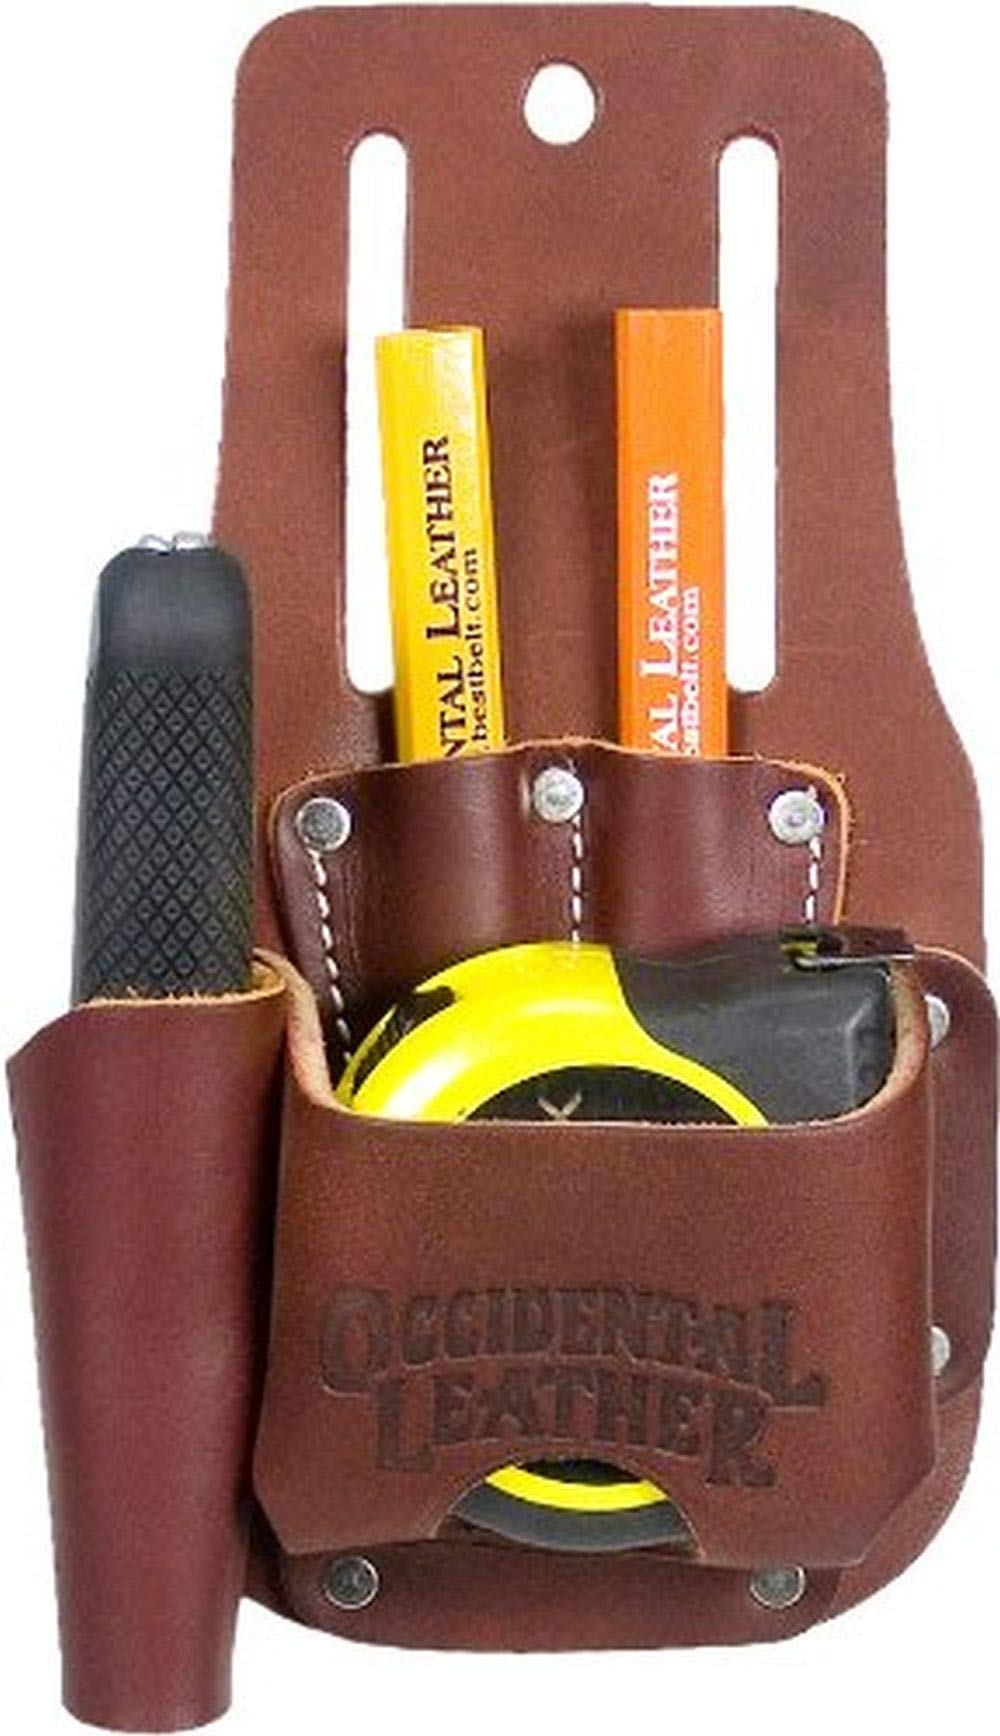 Occidental Leather 5047 Tape & Knife Holder by Occidental Leather